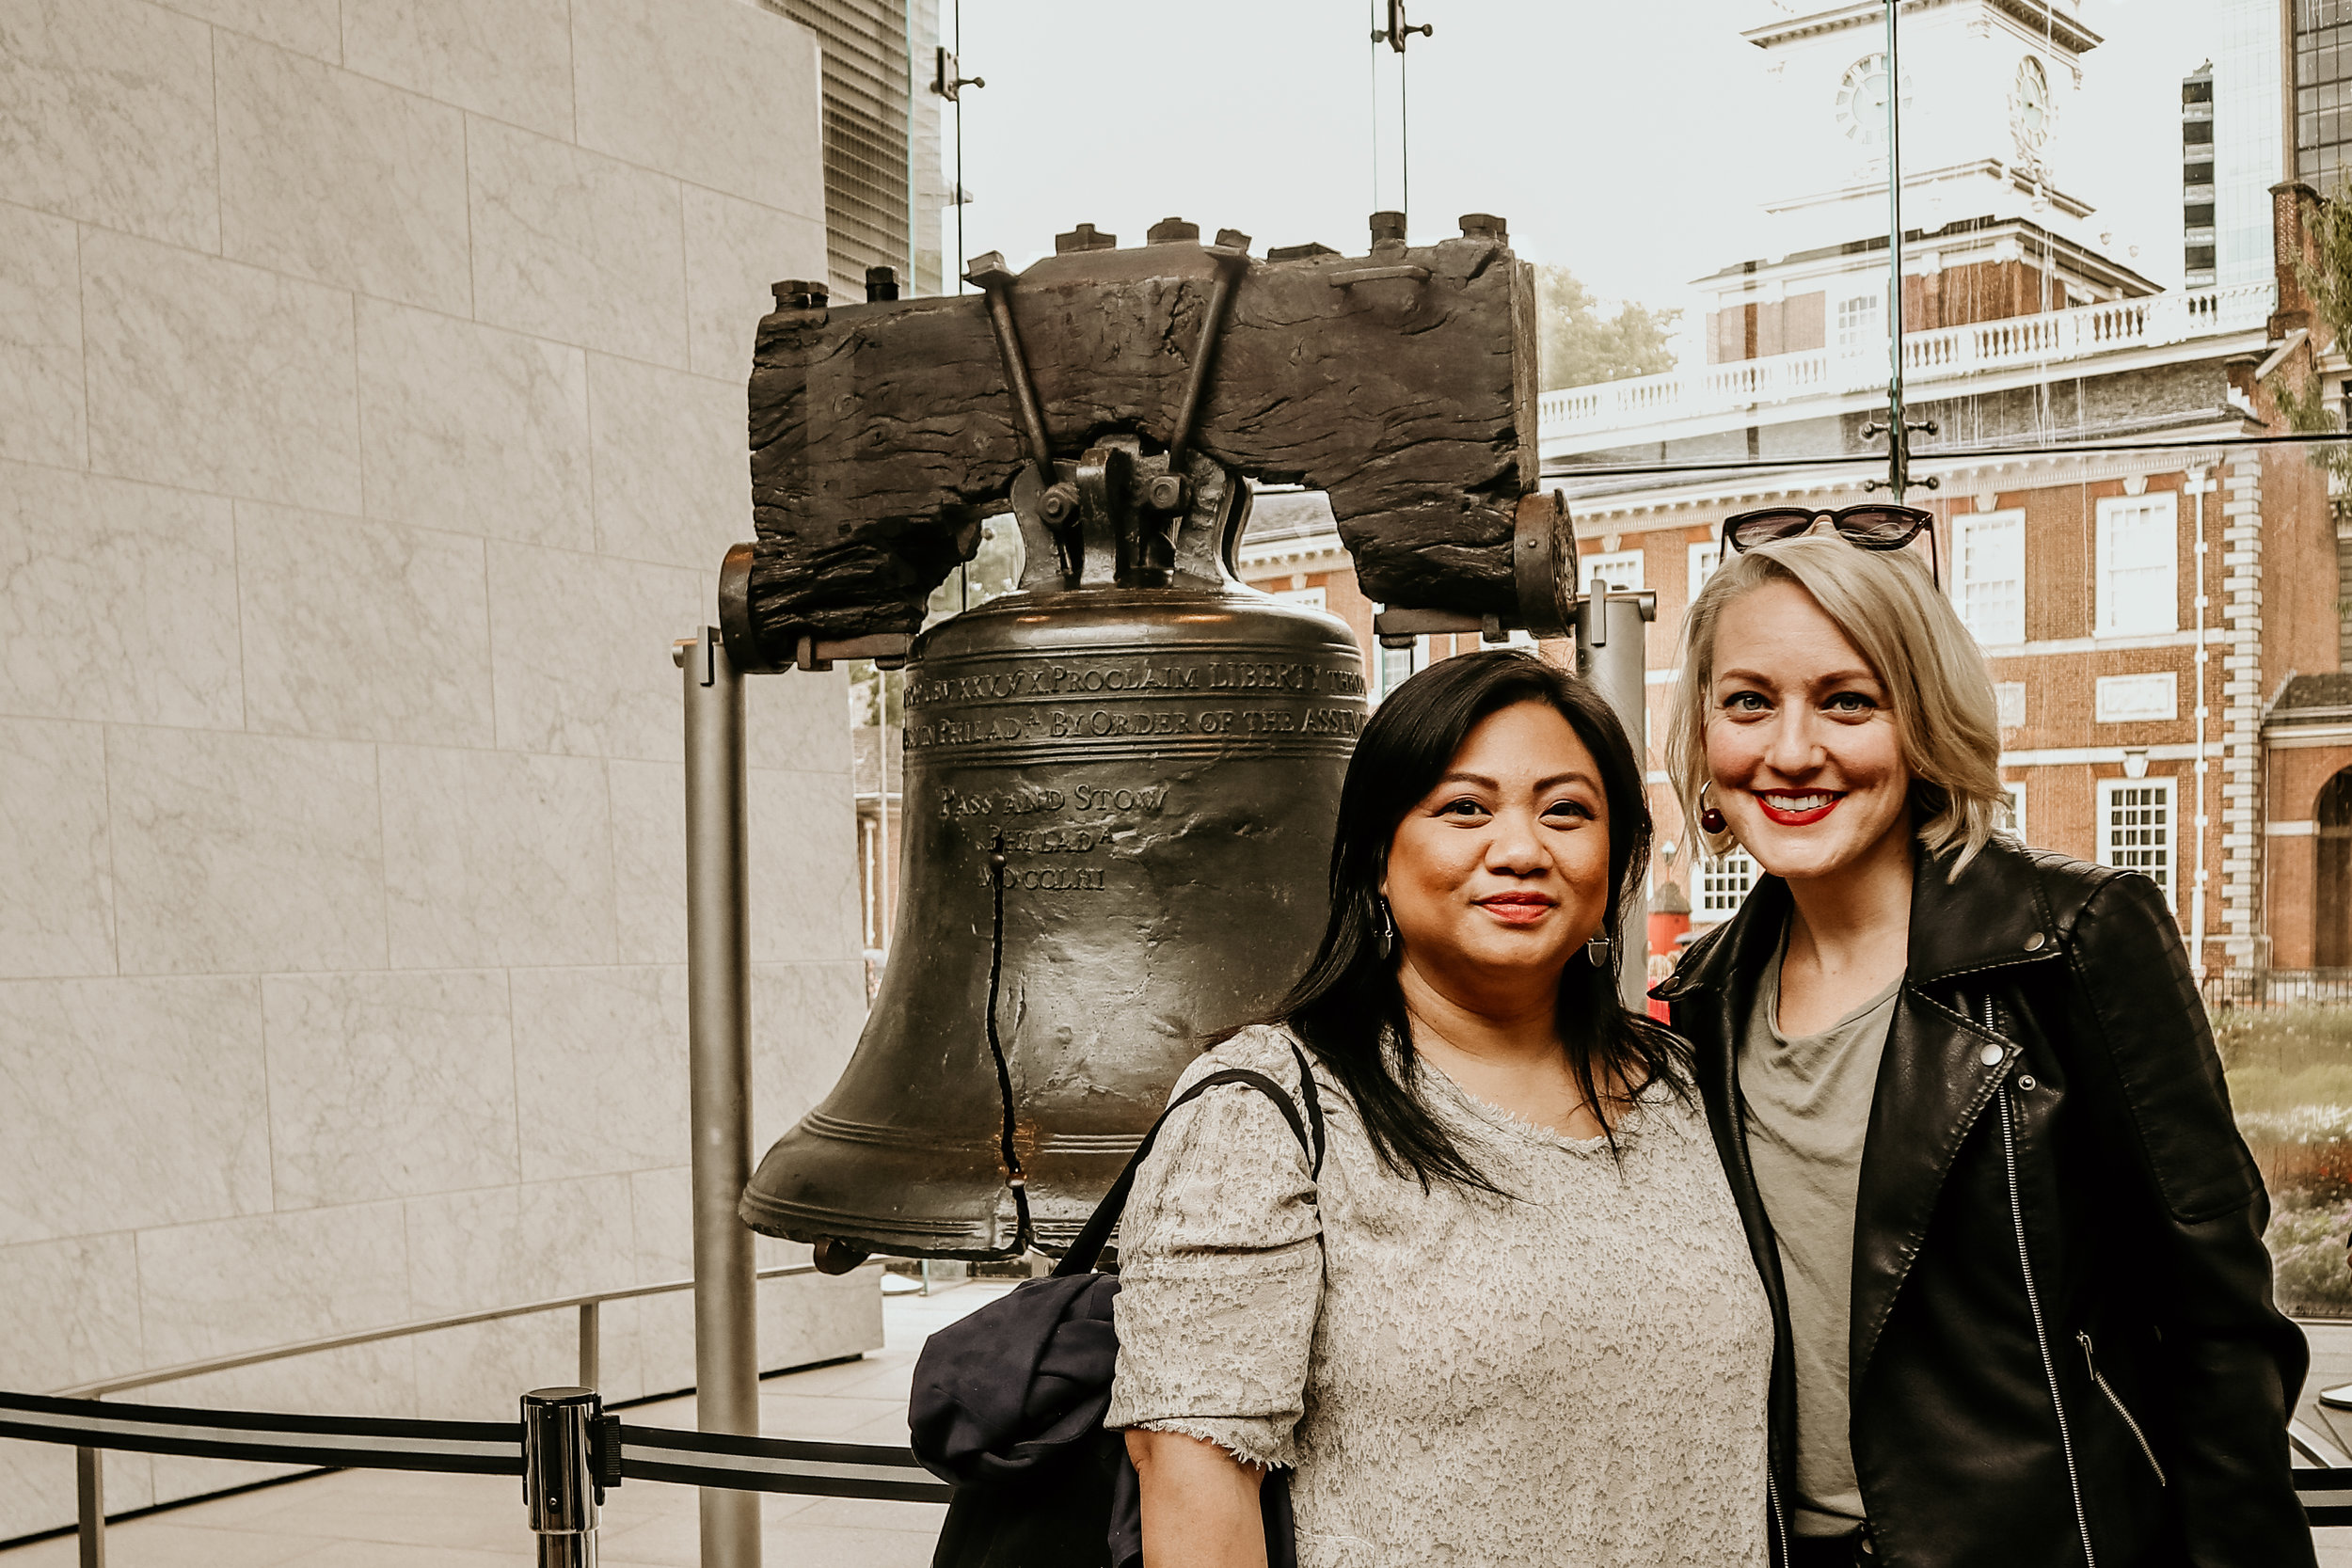 10K Dollar Day hosts Lulu Picart and Alison Burns visit the Liberty Bell - photo by Ash Burns